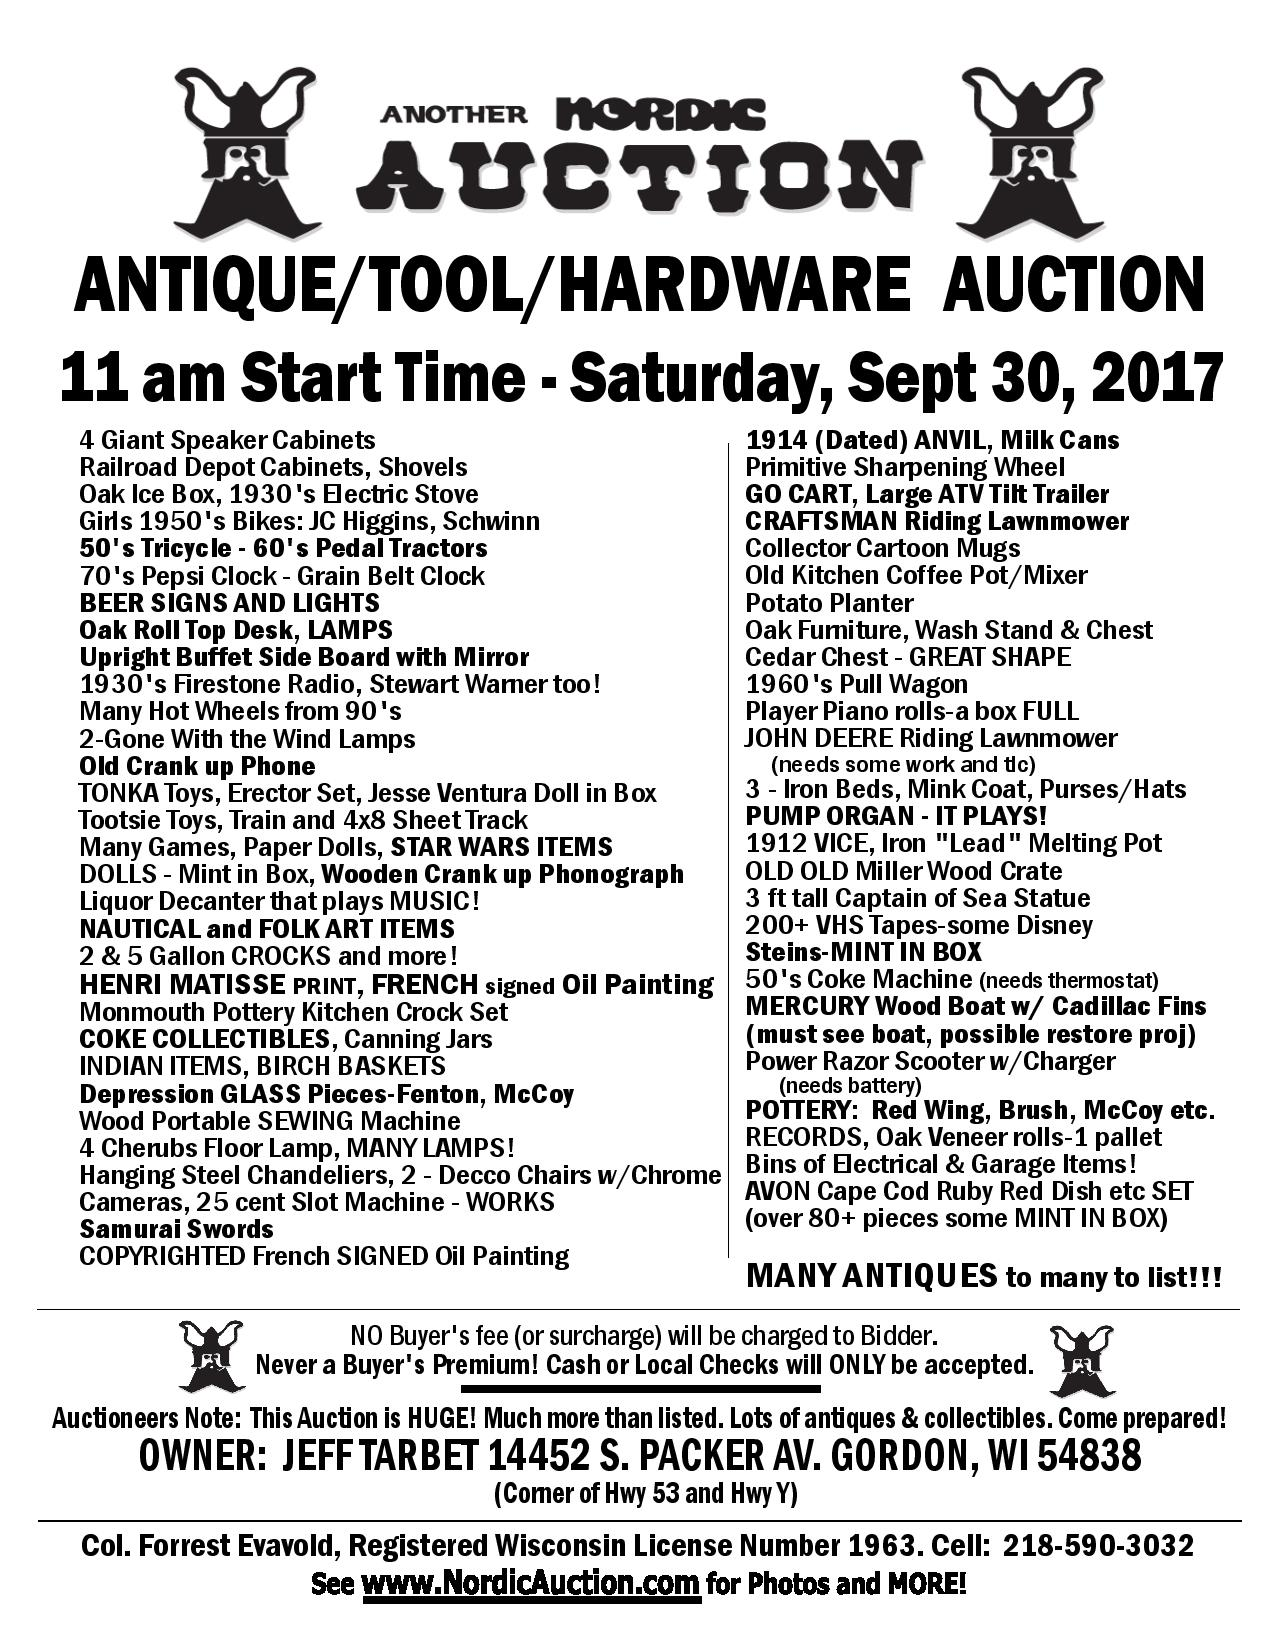 ANTIQUE/TOOL/HARDWARE AUCTION (Sept. 30), Gordon, WI